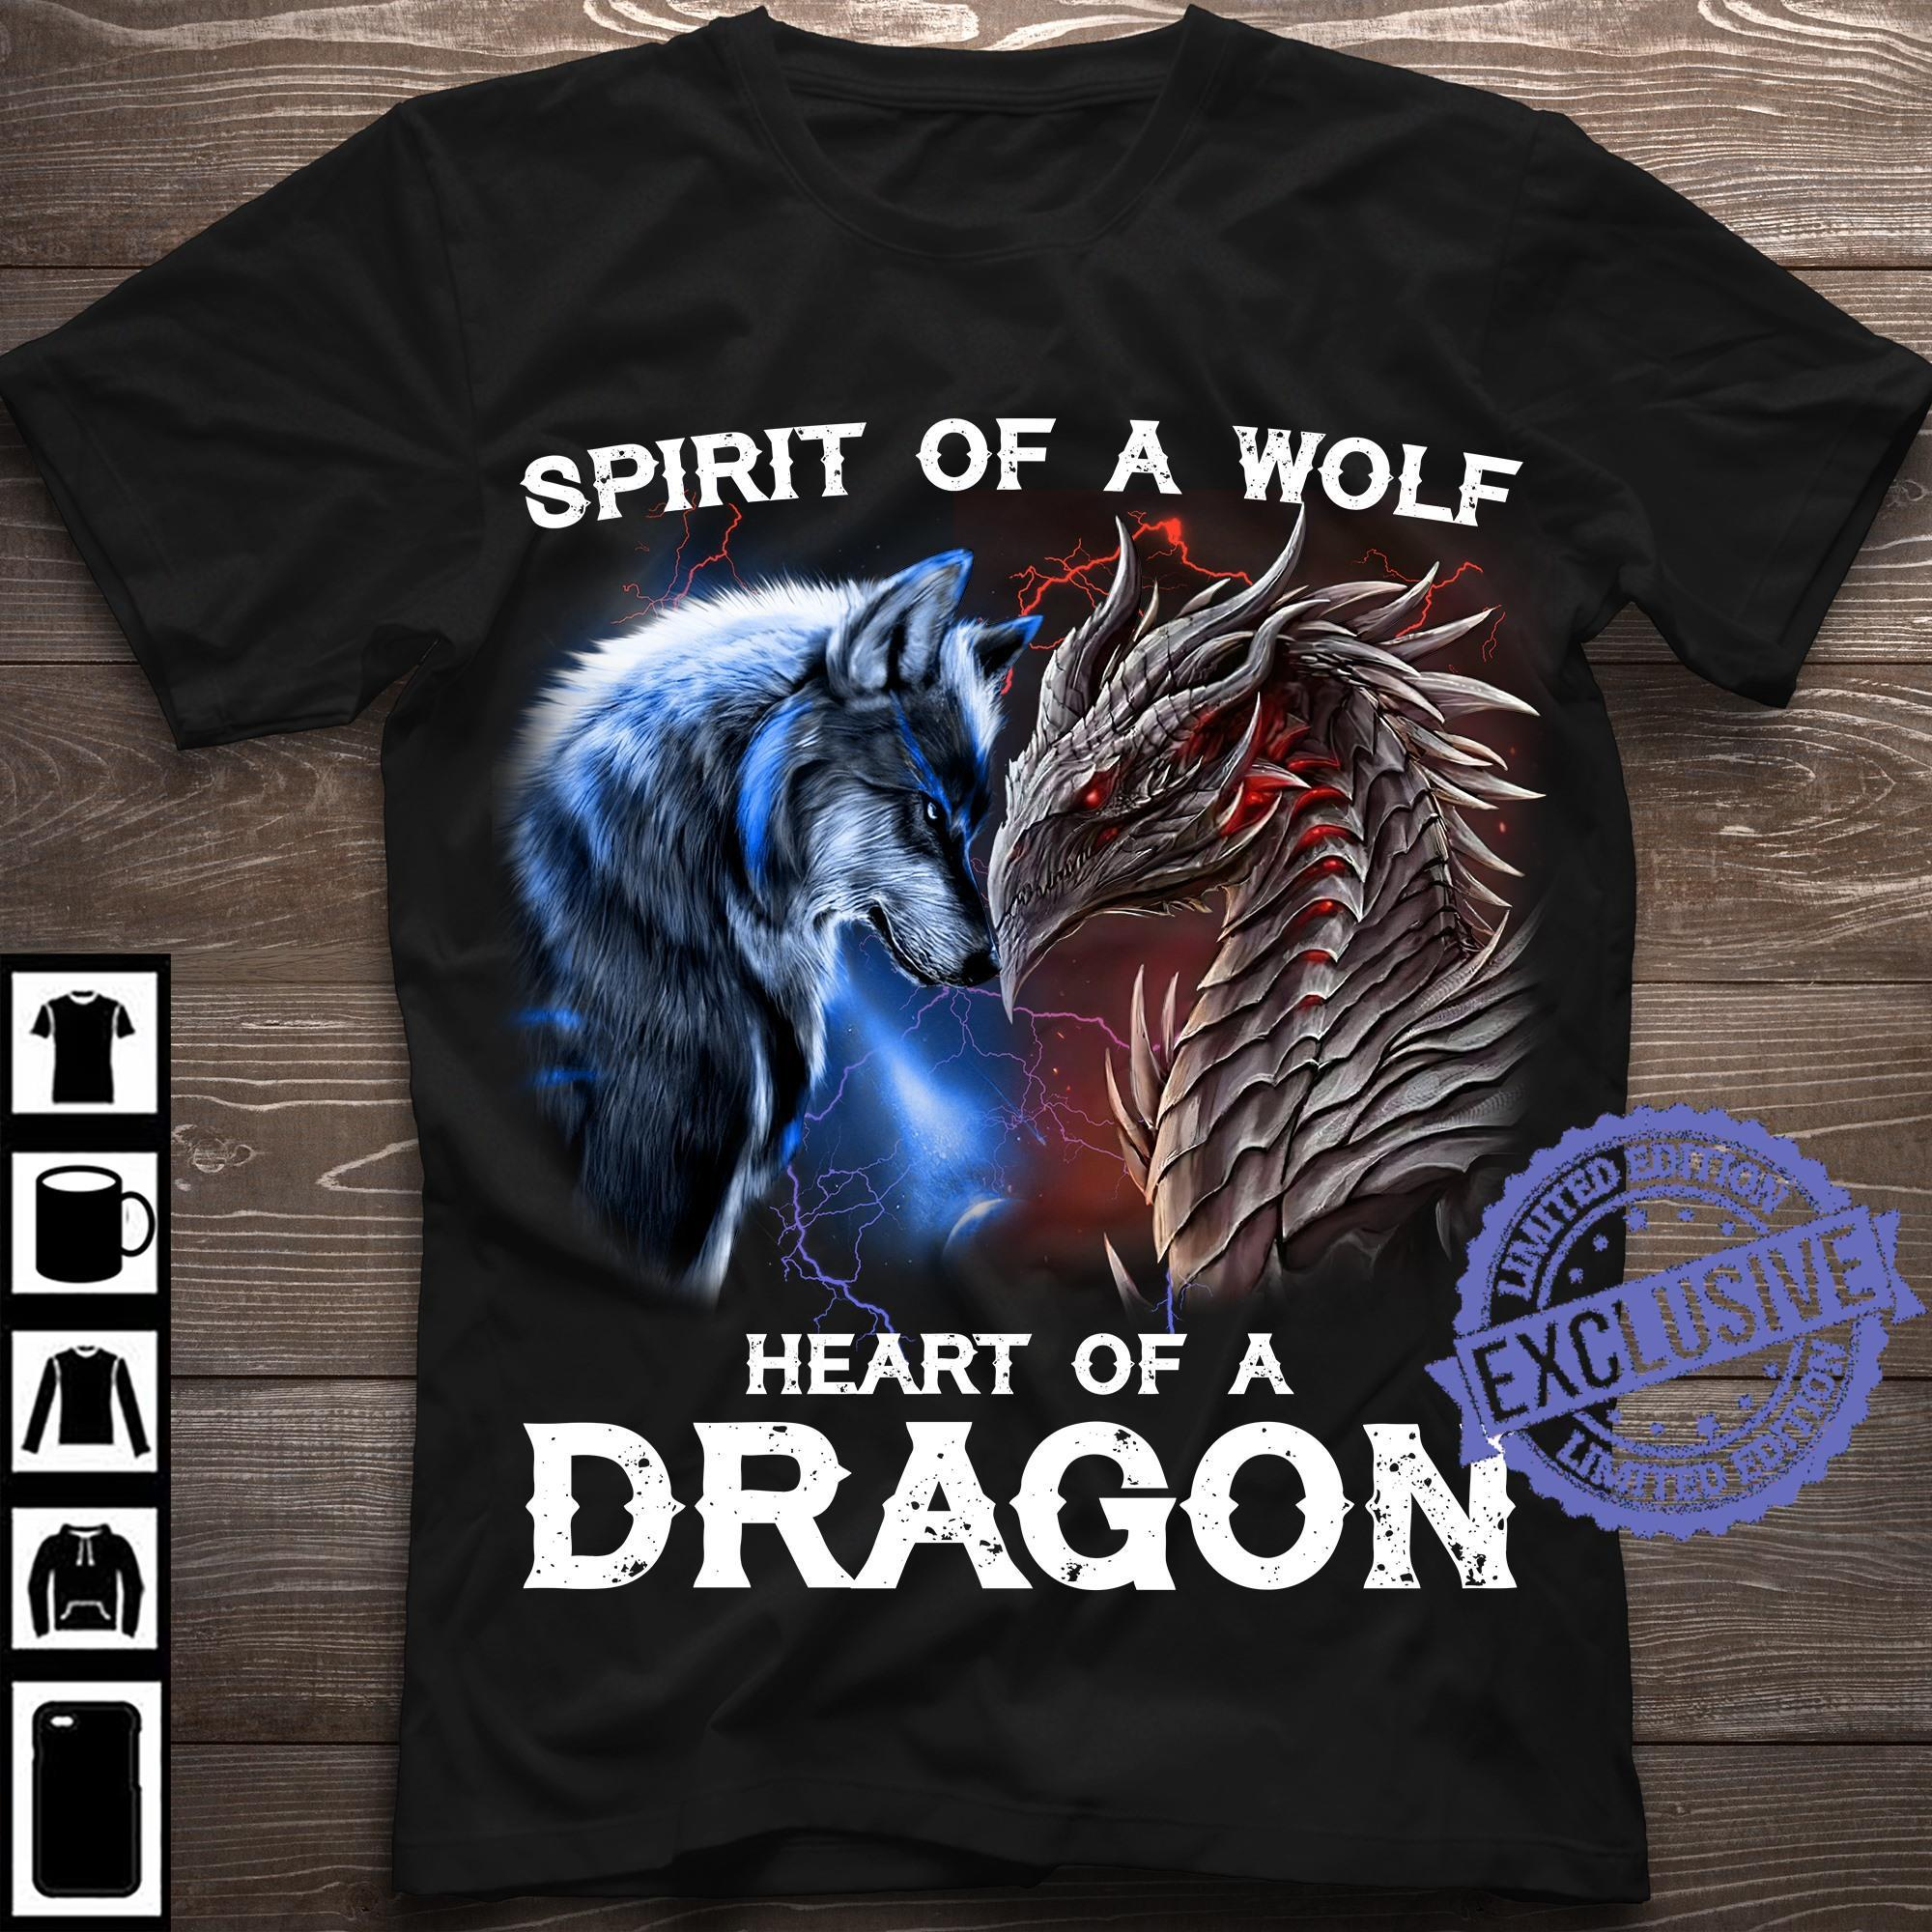 Spirit of a wolf heart of a dragon shirt